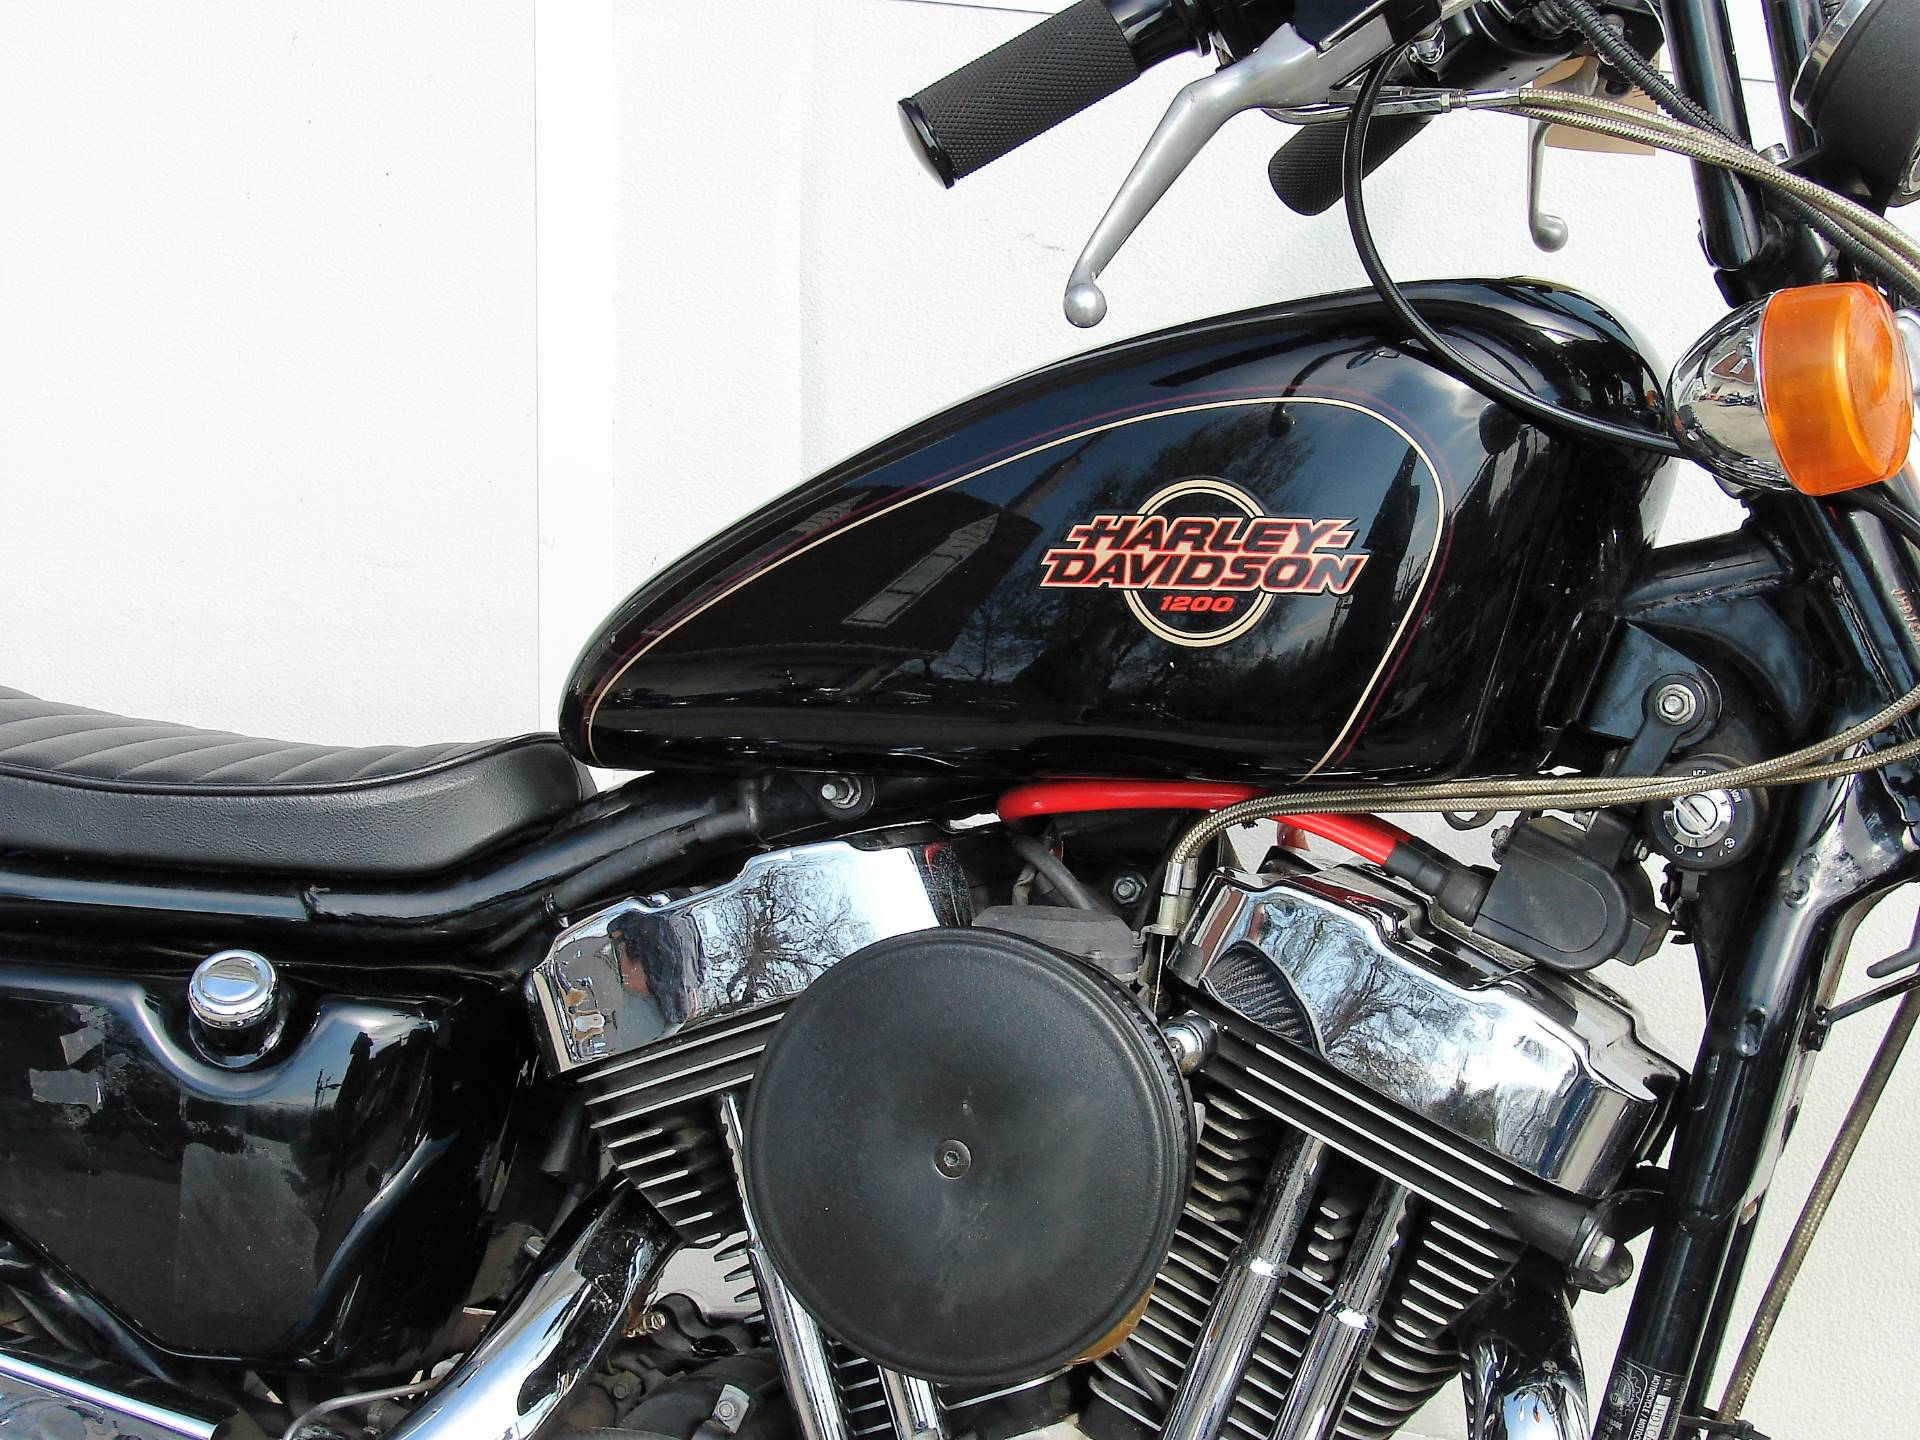 1996 Harley-Davidson XL 1200 Sportster  (Black) in Williamstown, New Jersey